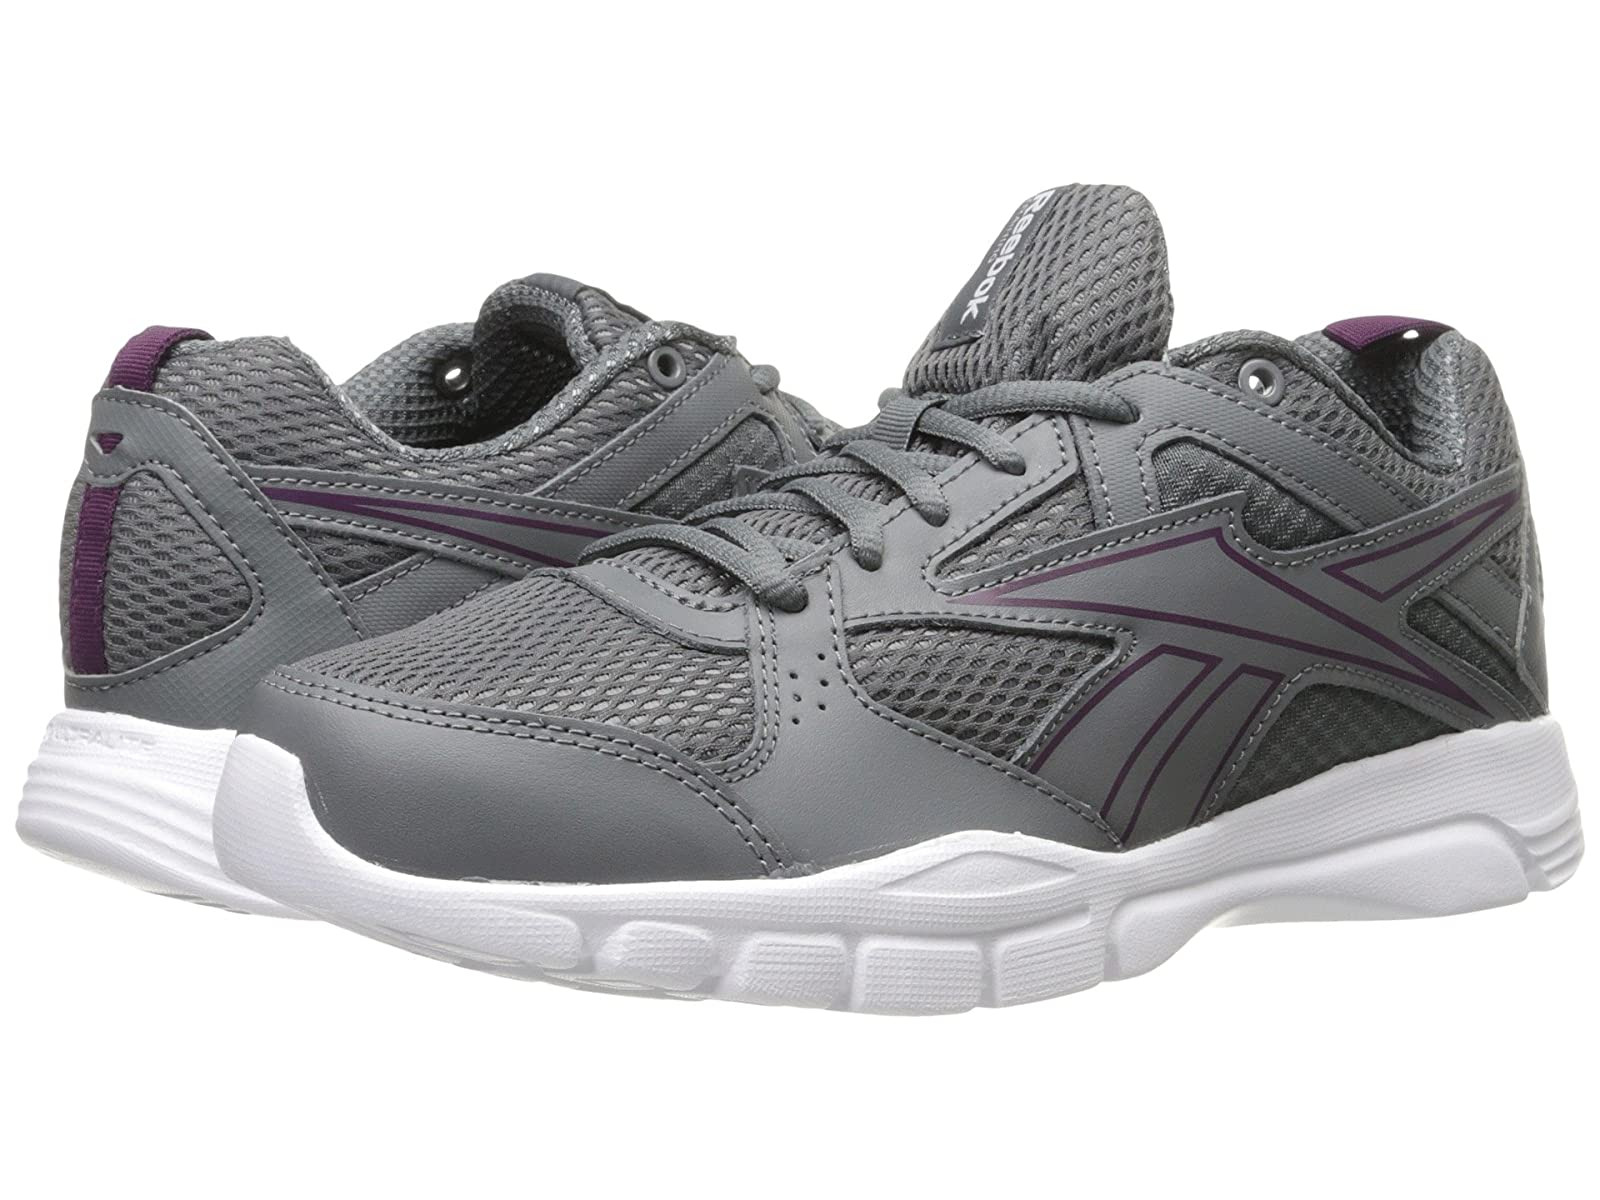 Reebok Trainfusion 5.0 L MTCheap and distinctive eye-catching shoes